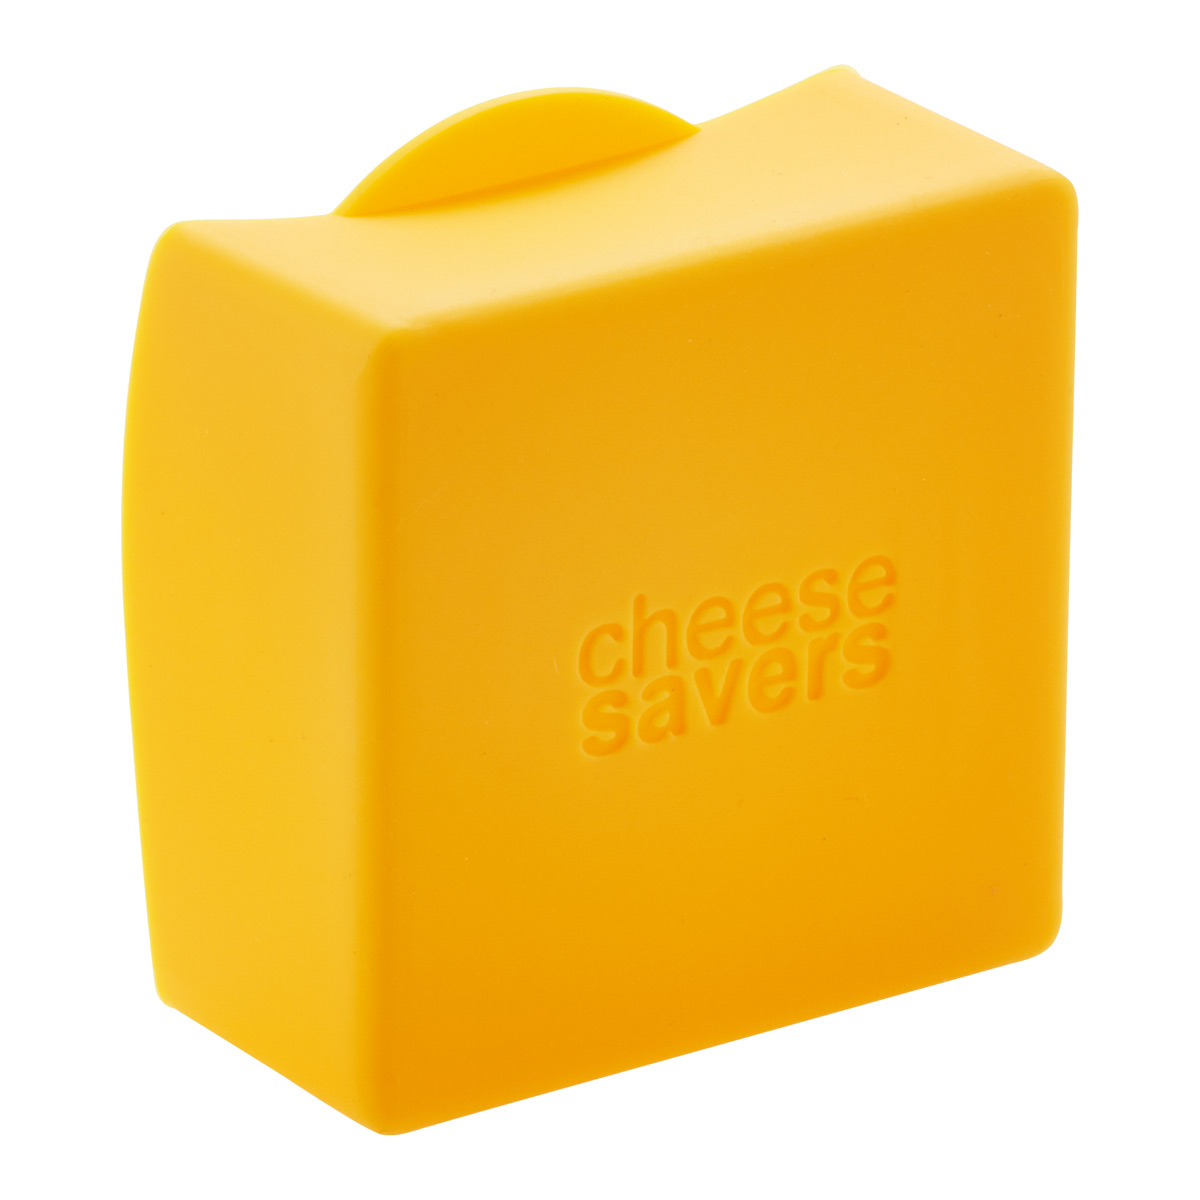 cheesesavers^